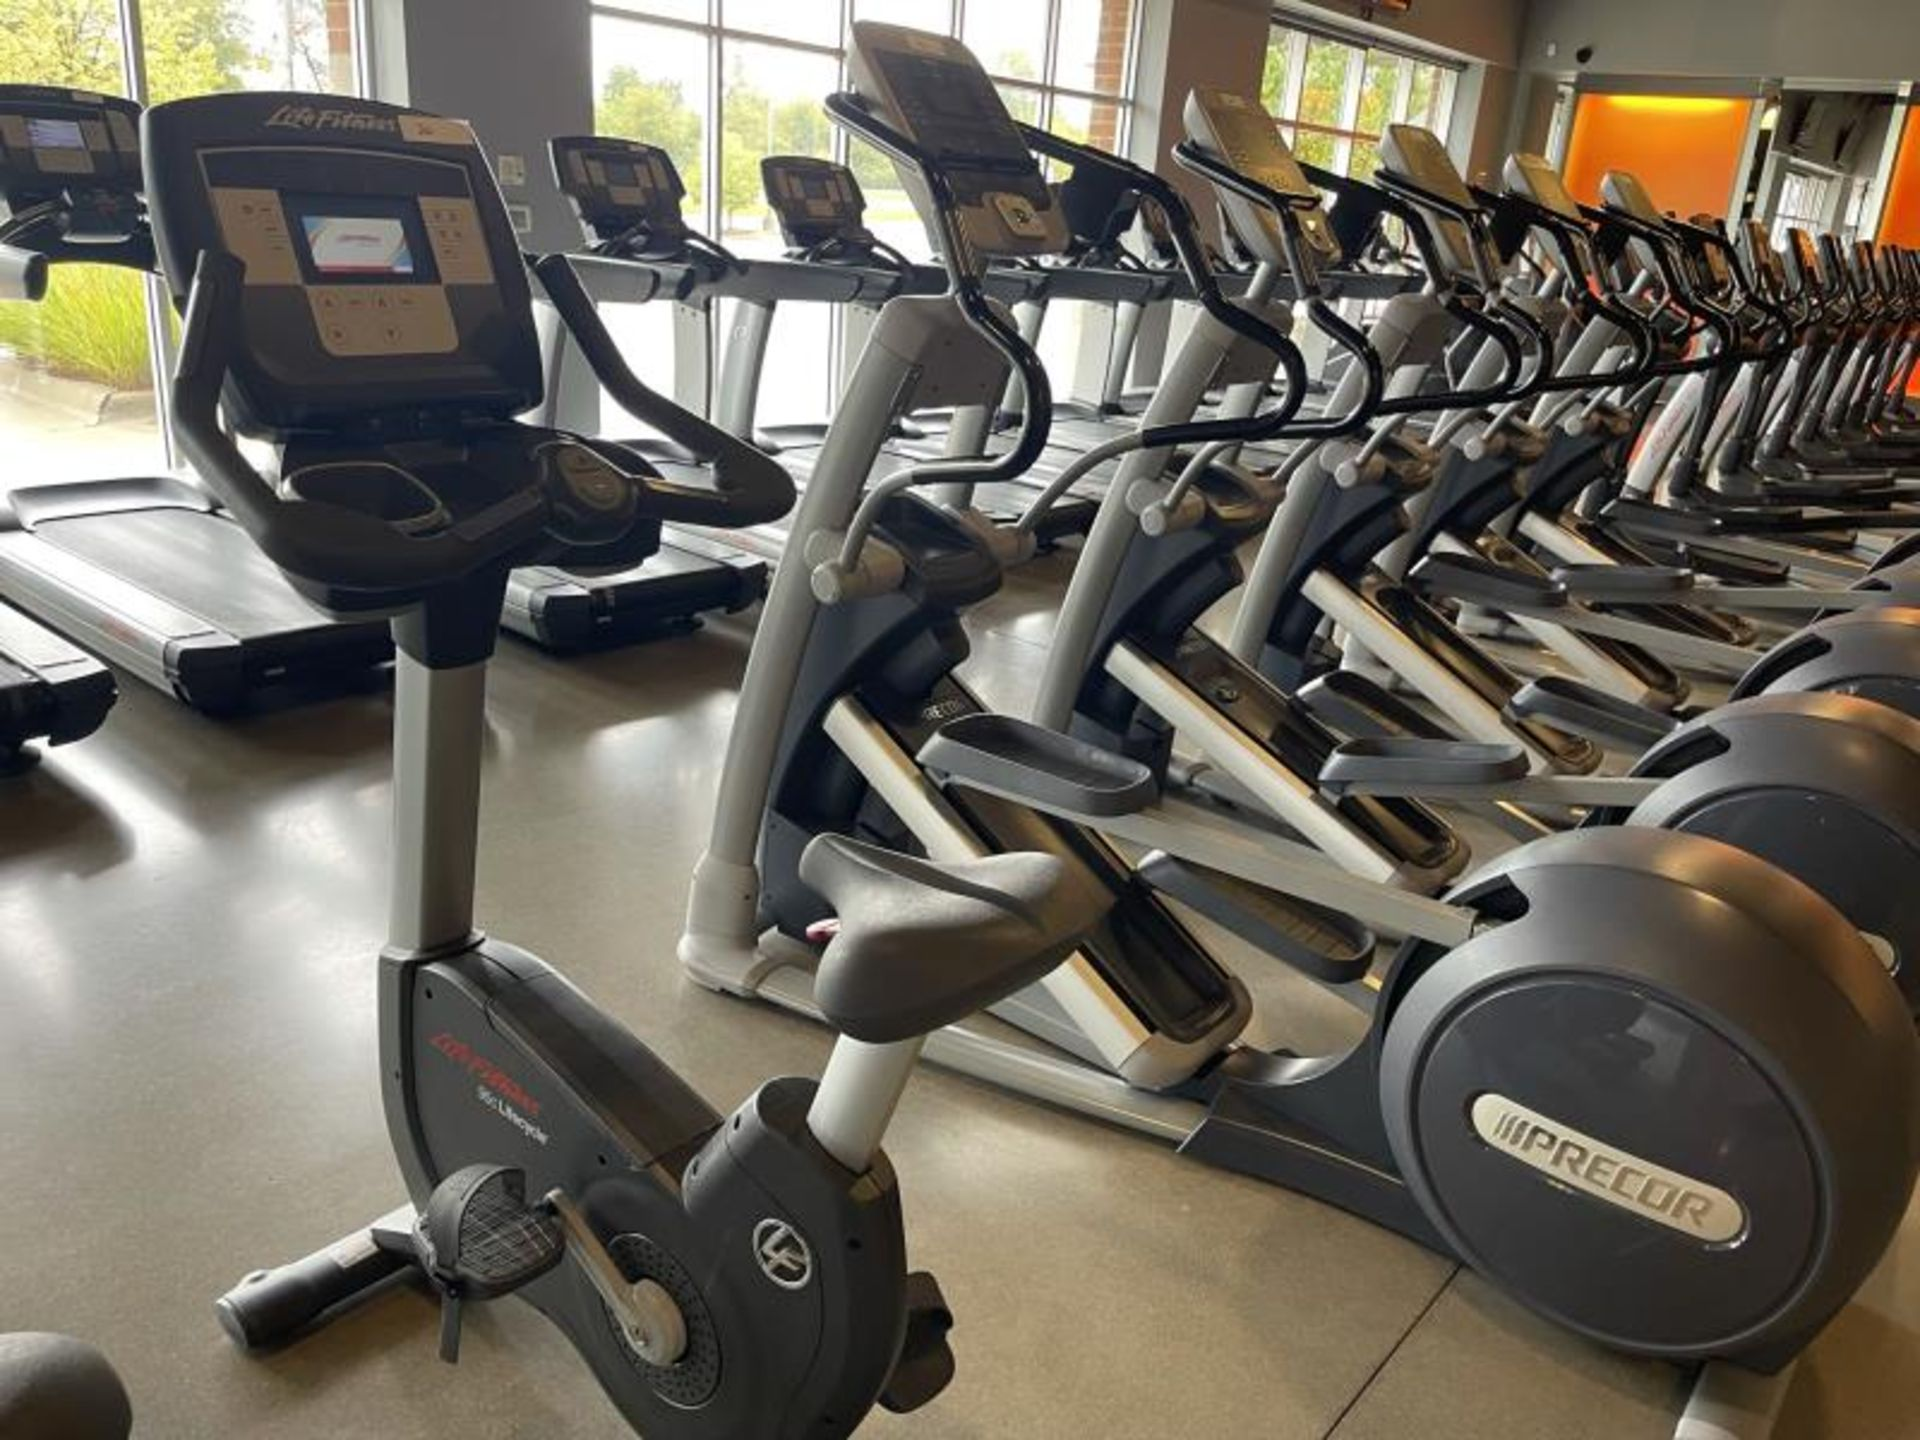 Life Fitness Exercise Bike M: 95CLifecycle, SN: CLV102815